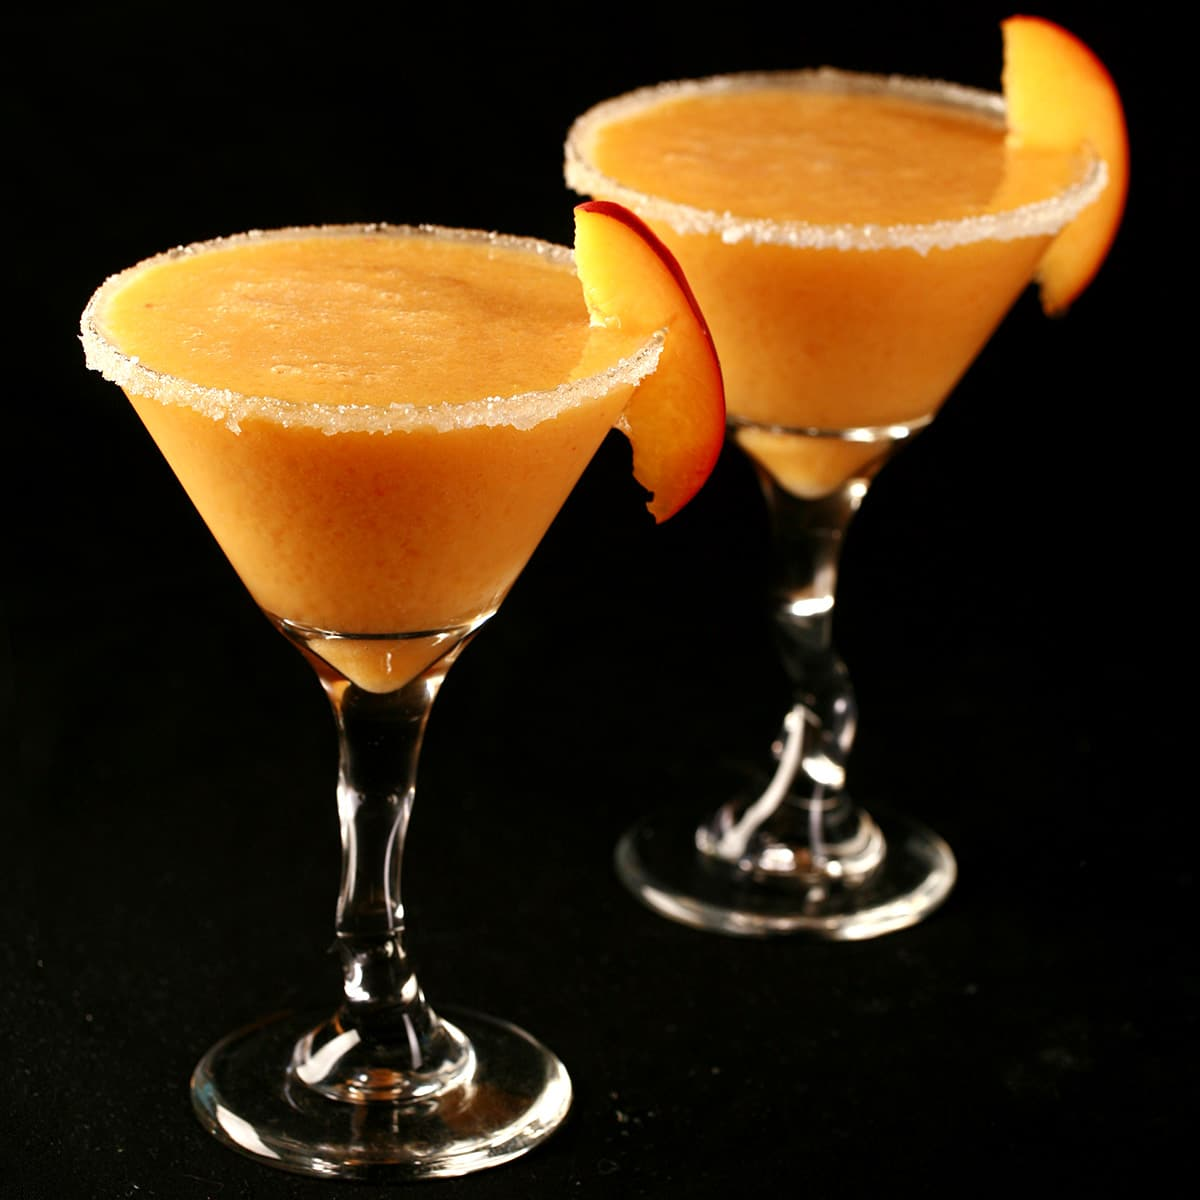 Two Fresh Peach Daiquiris in martini cocktail glasses. The glasses are rimmed with sugar and garnished with a peach slice.